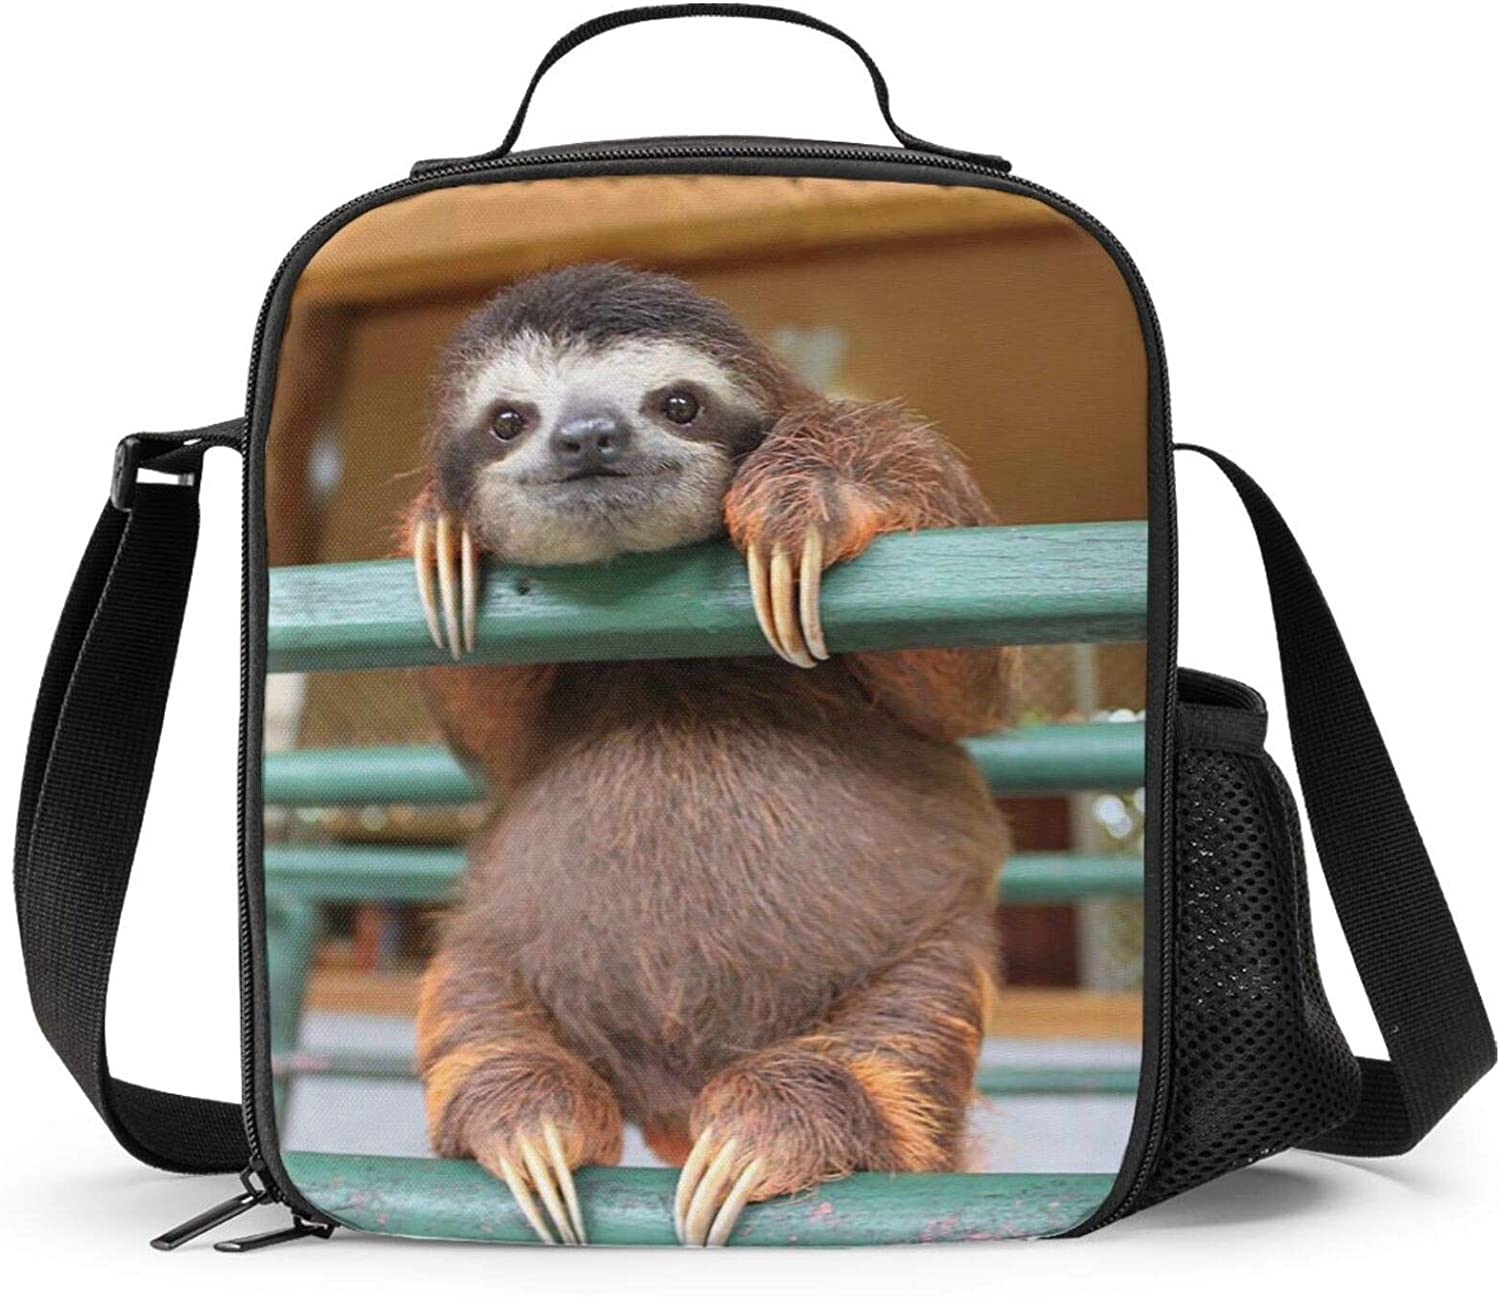 PrelerDIY Sloth Lunch Box Price reduction - 5 ☆ very popular Funny Insulated for 3 Kids